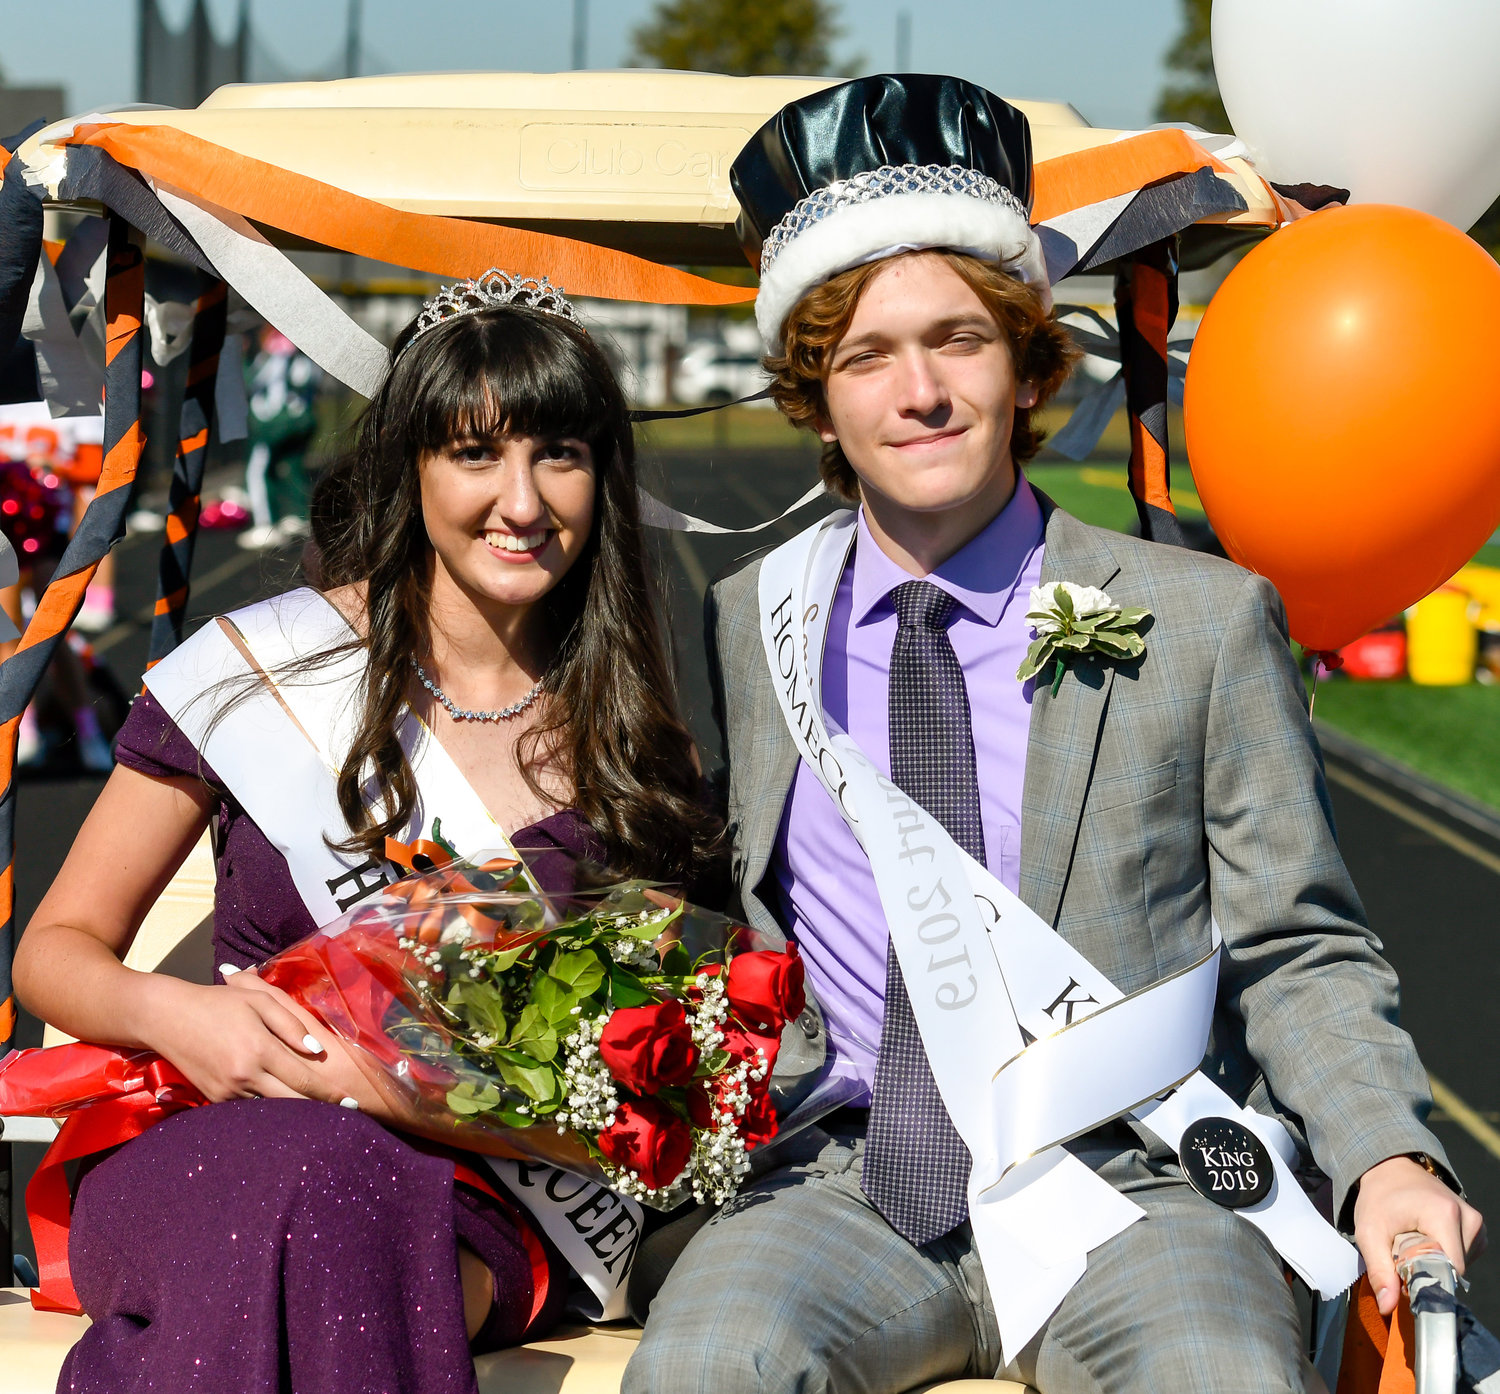 Queen Lauren Gunn and King Gary Faraone were a big part of the Homecoming festivities.